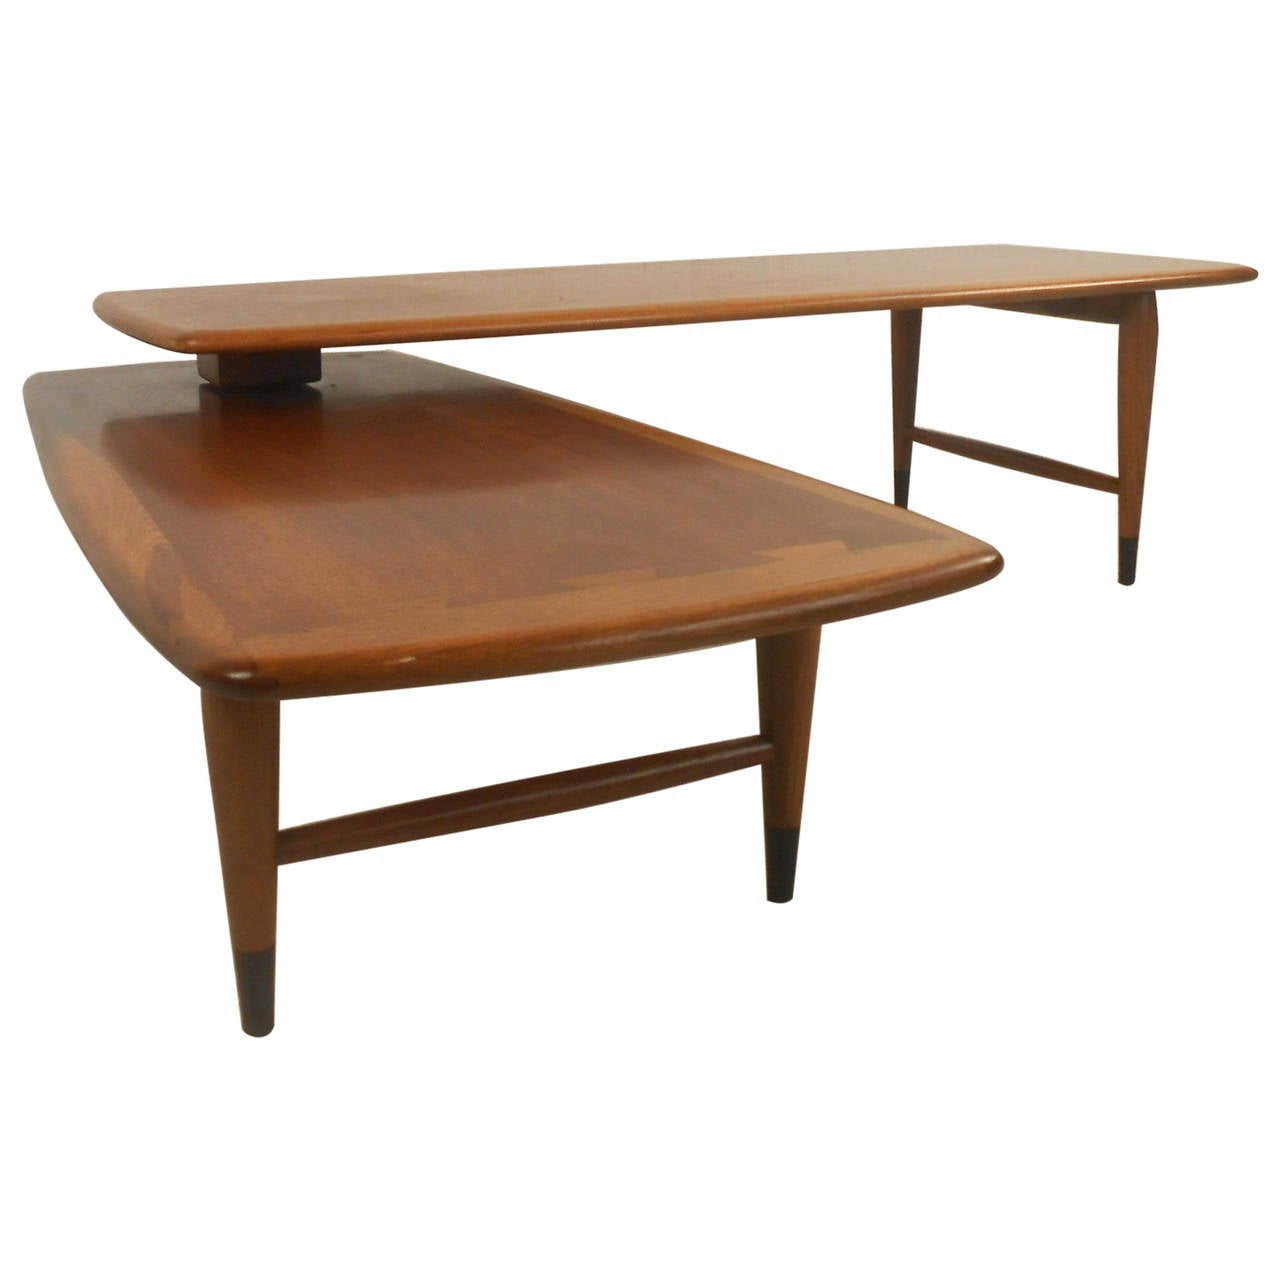 Mid century modern expanding coffee table by lane for sale at 1stdibs Mid century coffee tables